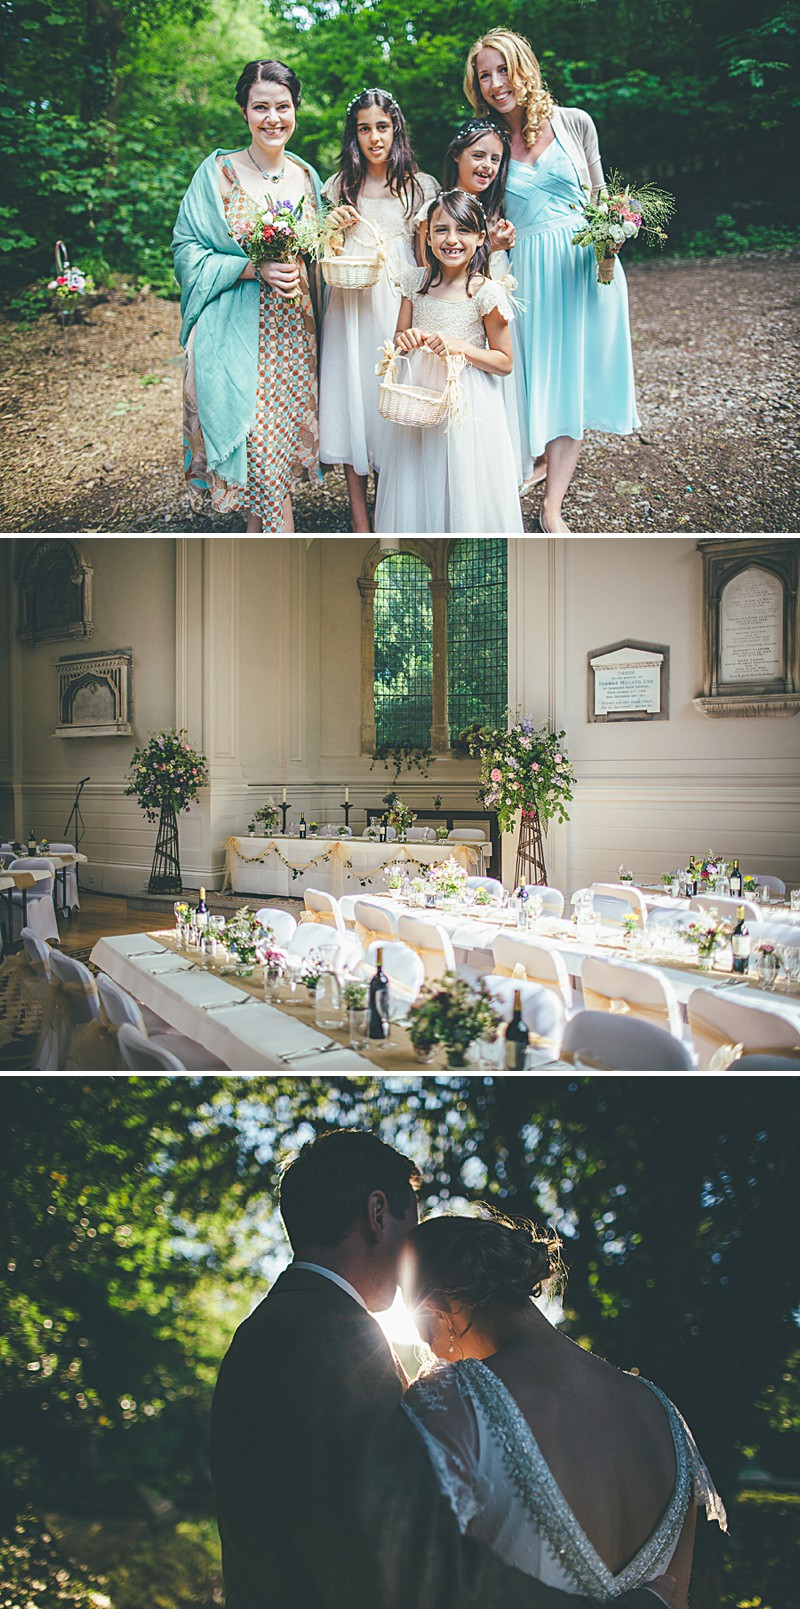 Rustic Wedding At Arnos Vale In Bristol With A 'Rania' Dress by Anouska G And Groom In Walker Slater Suit By Matt Willis Photography._0005